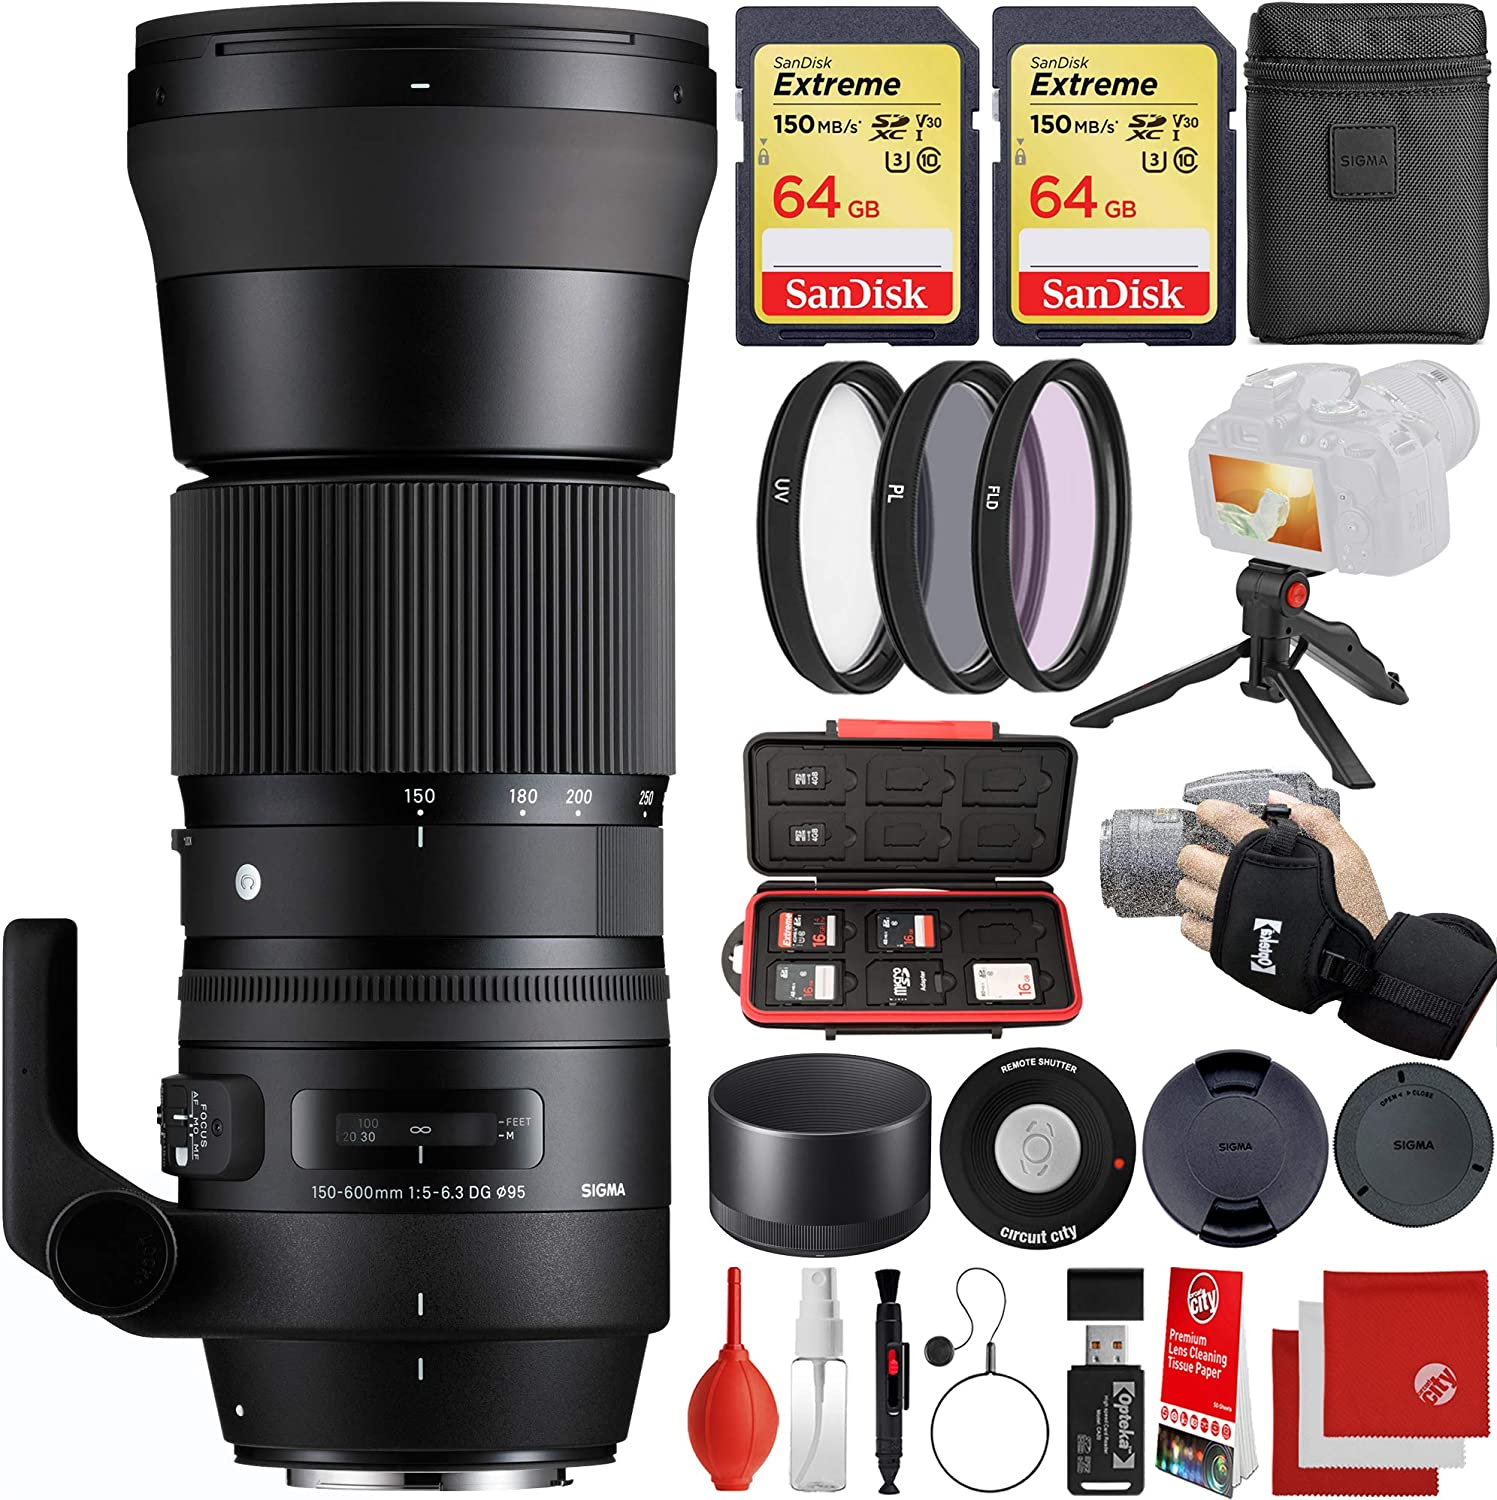 Sigma 150-600mm f/5-6.3 Contemporary DG OS HSM Nikon F-Mount Bundle with 2X 64GB Memory Cards, IR Remote, 3 Piece Filter Kit, Wrist Strap, Card Reader, Memory Card Case, Tabletop Tripod